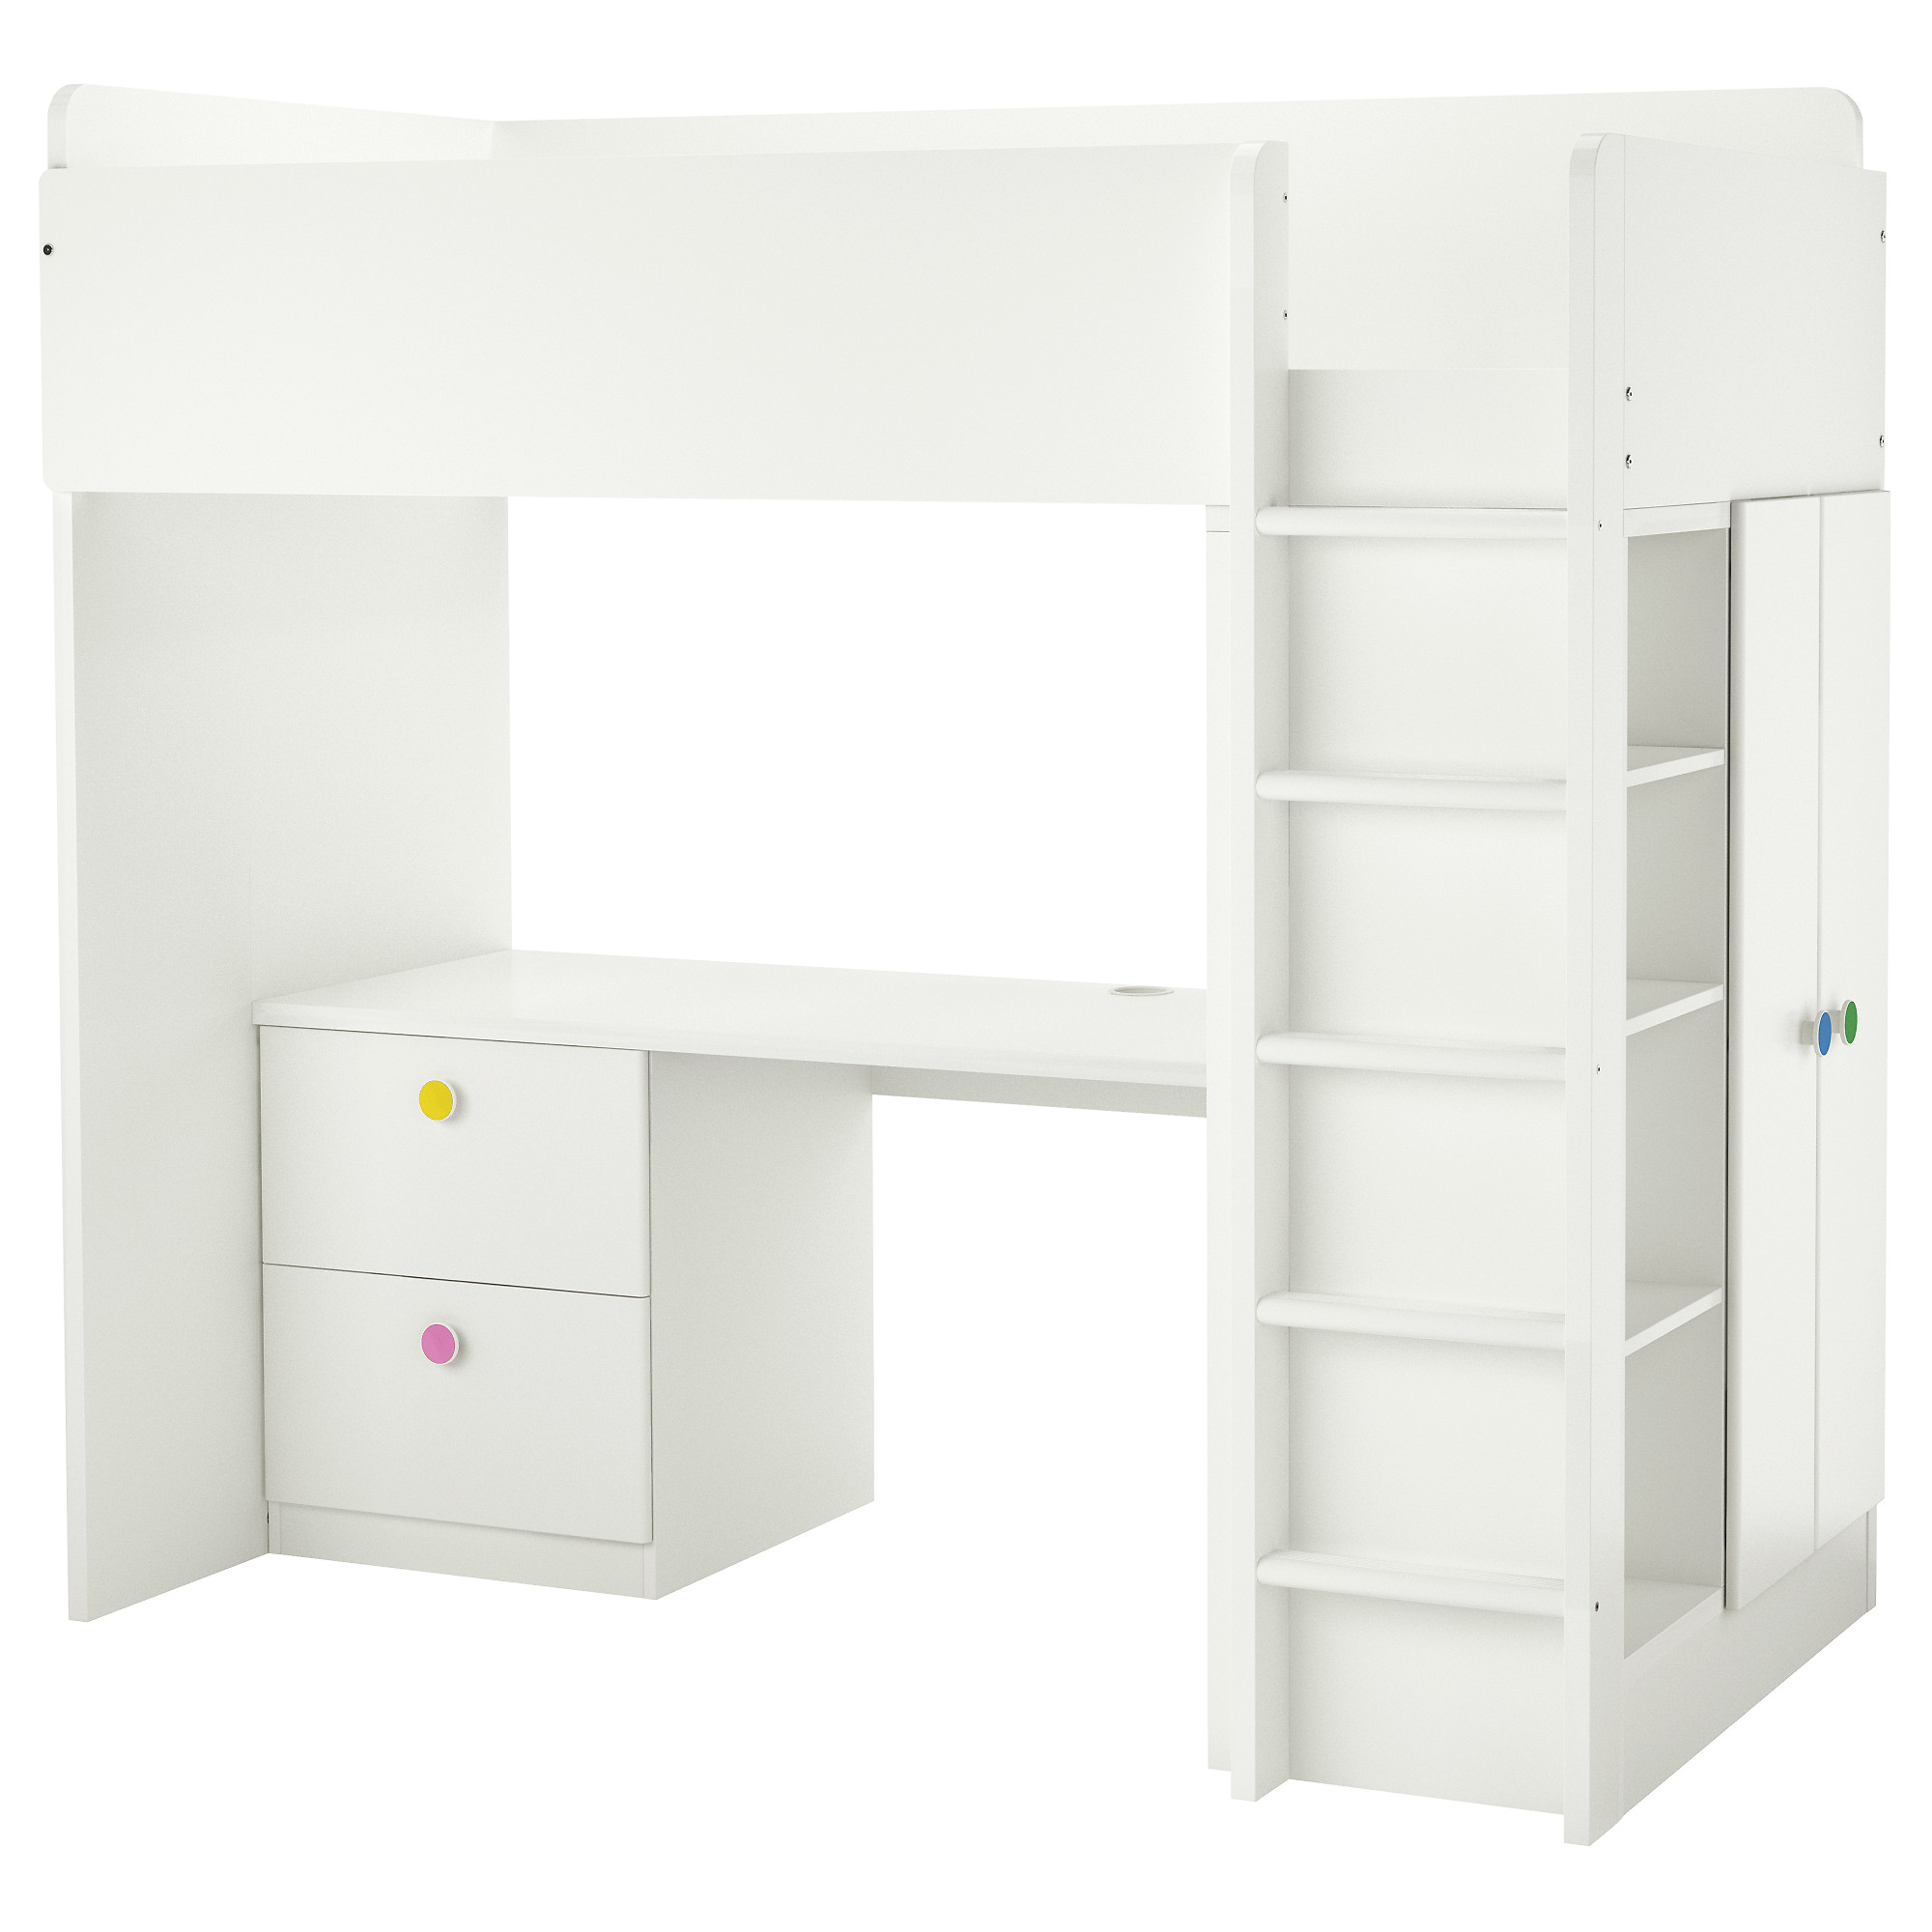 Uncategorized Ikea Bunk Beds For Kids bunk beds loft ikea stuva bed with 2 drawers2 doors white height 76